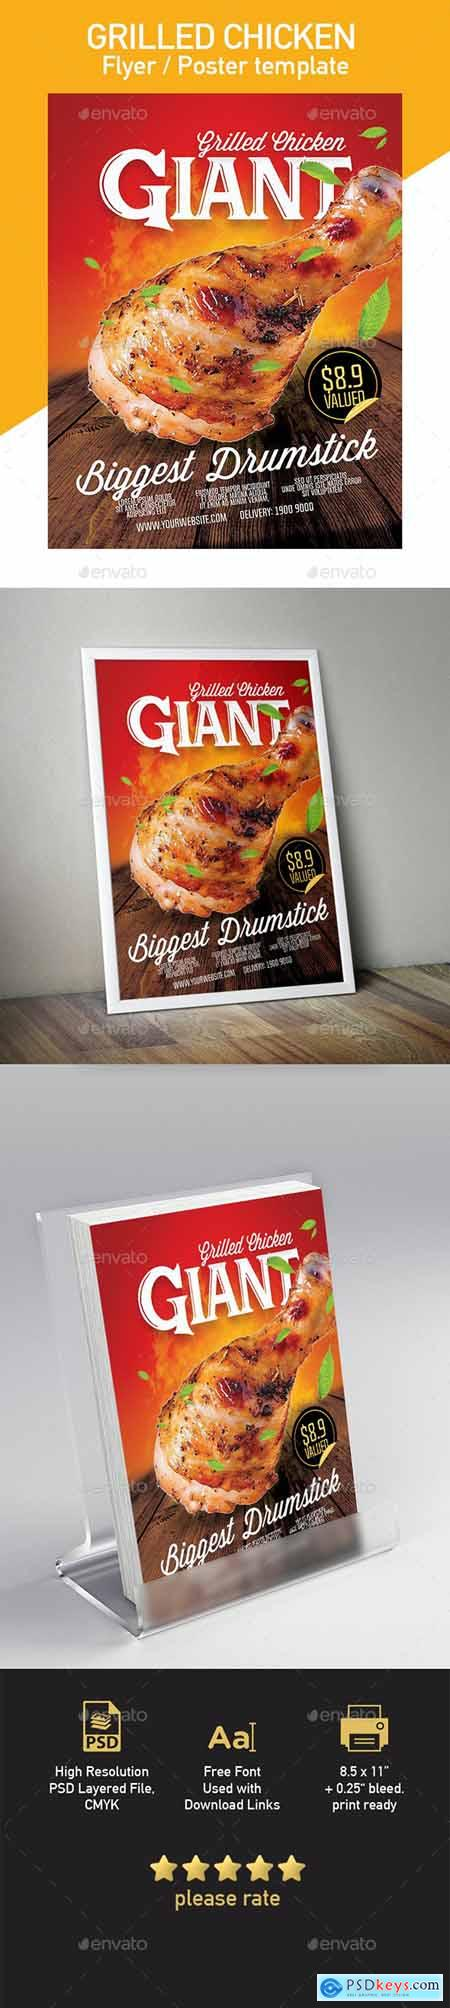 Grilled Chicken Template for Flyer Poster 20413936